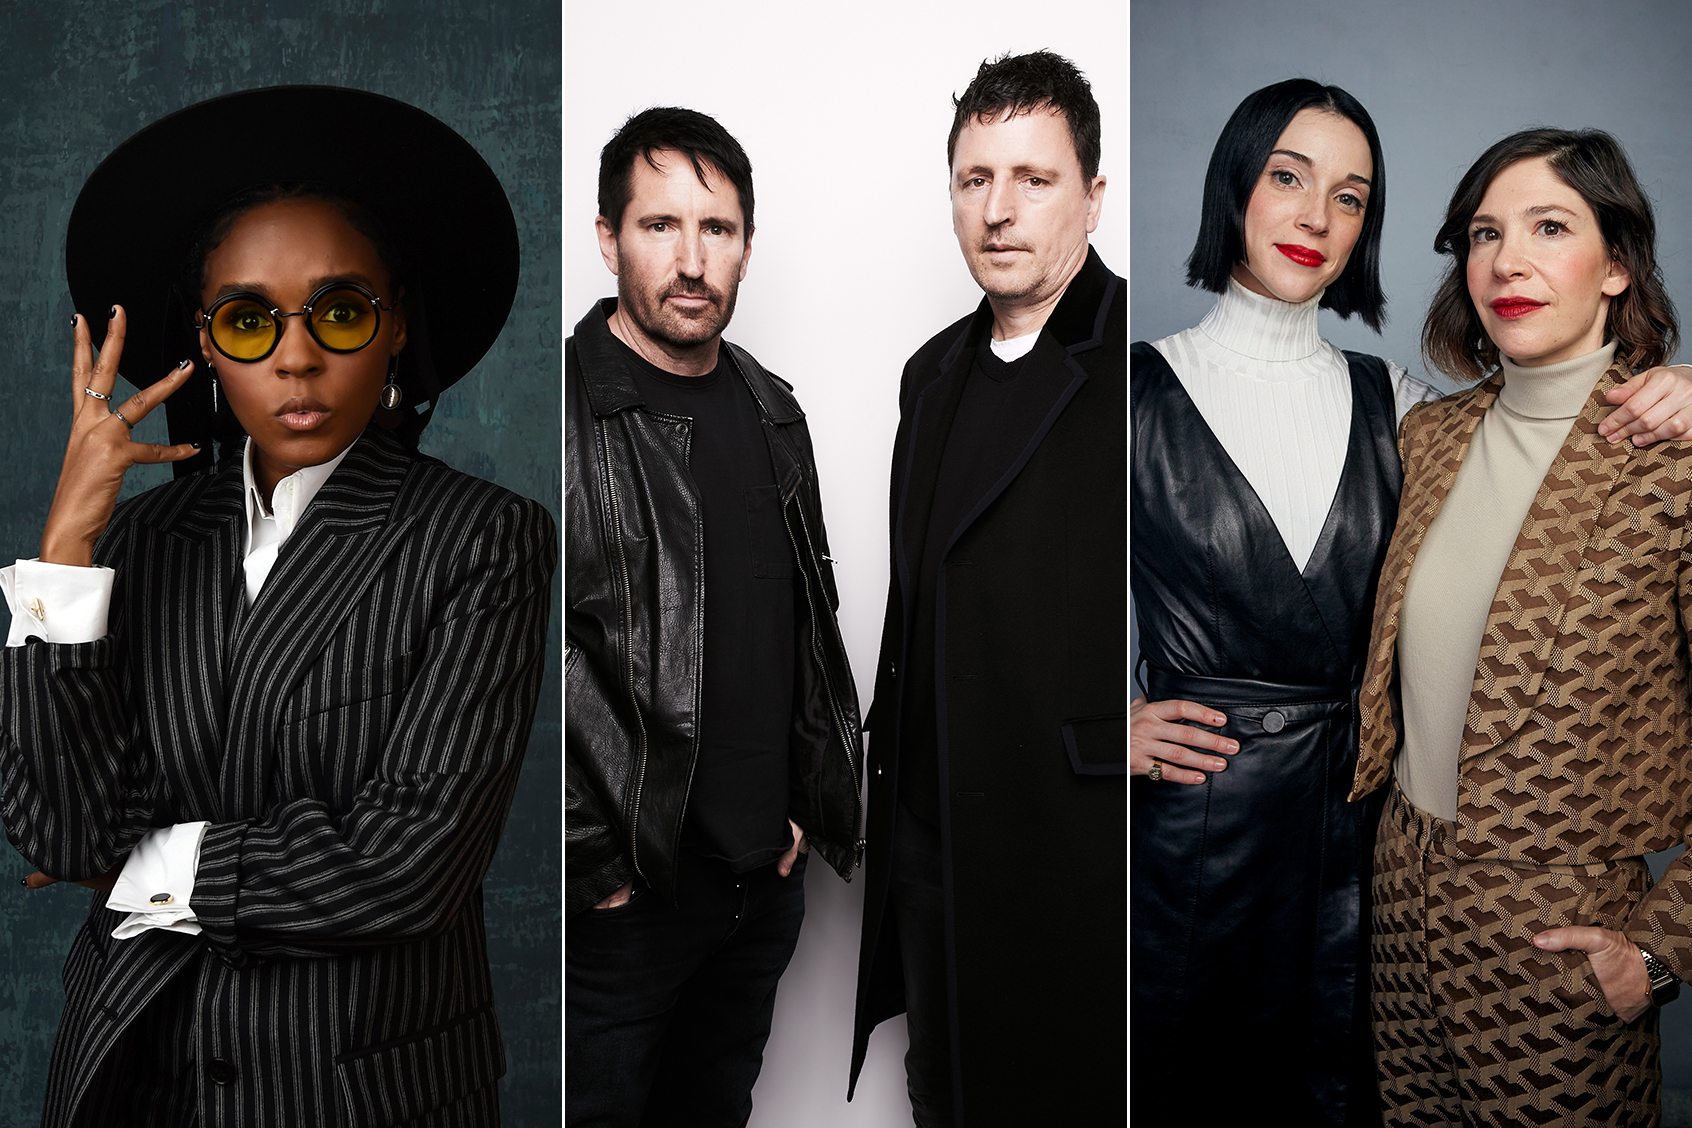 SXSW 2020: Trent Reznor, Janelle Monáe, Carrie Brownstein Tapped for Keynote Lineup